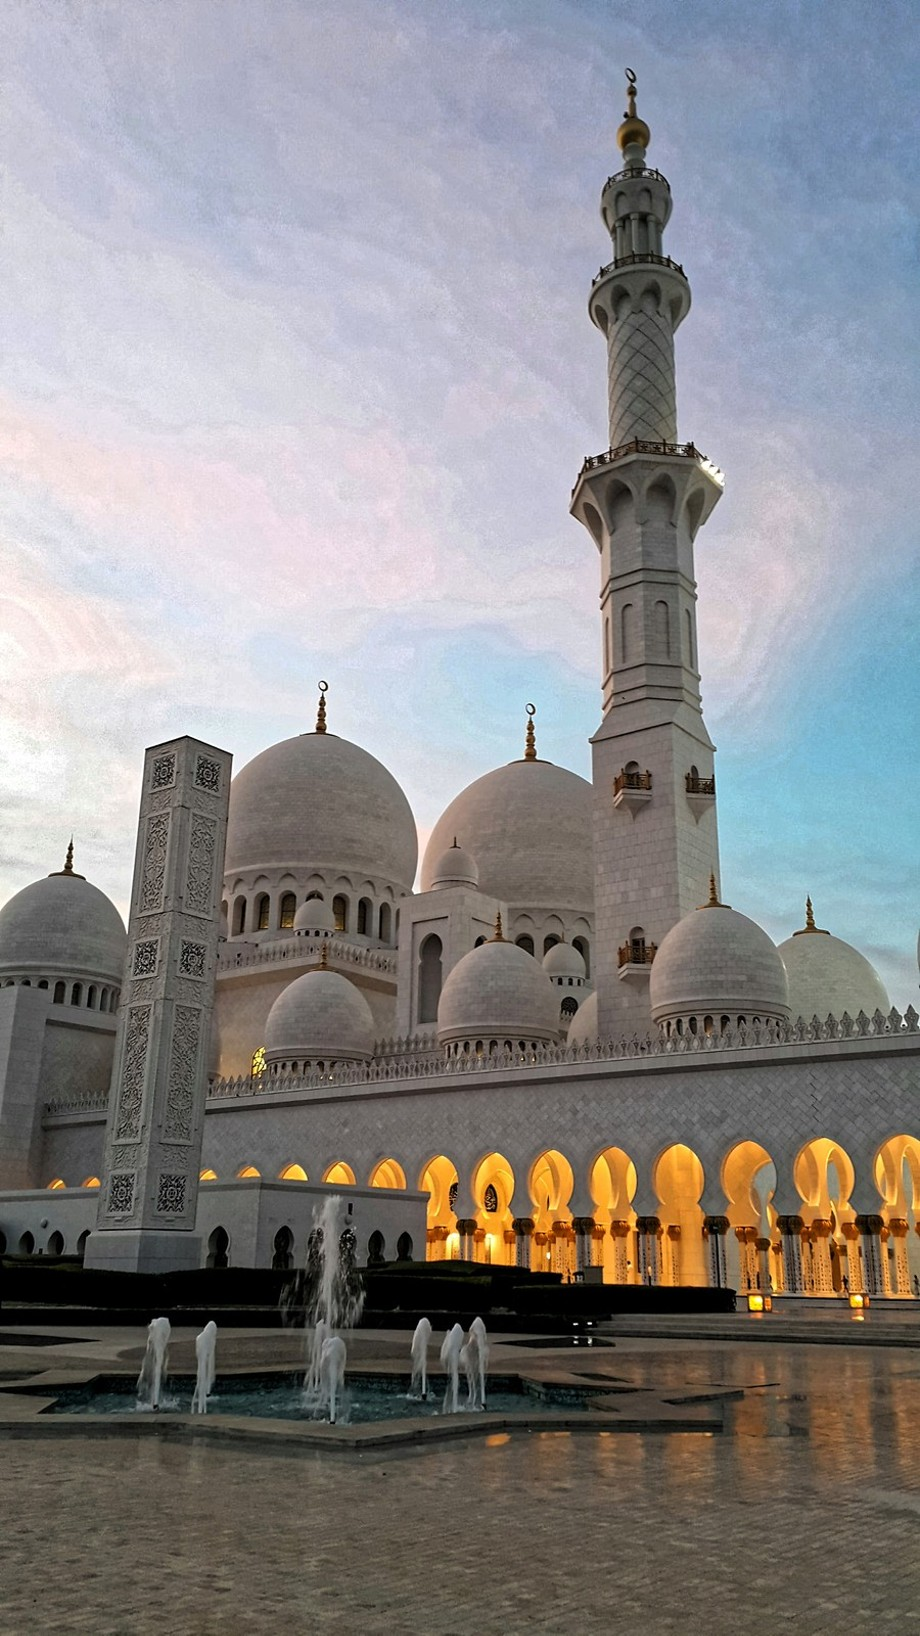 Picture taken in Abu Dhabi. United Arab Emirates. Sheikh Zayed Mosque.